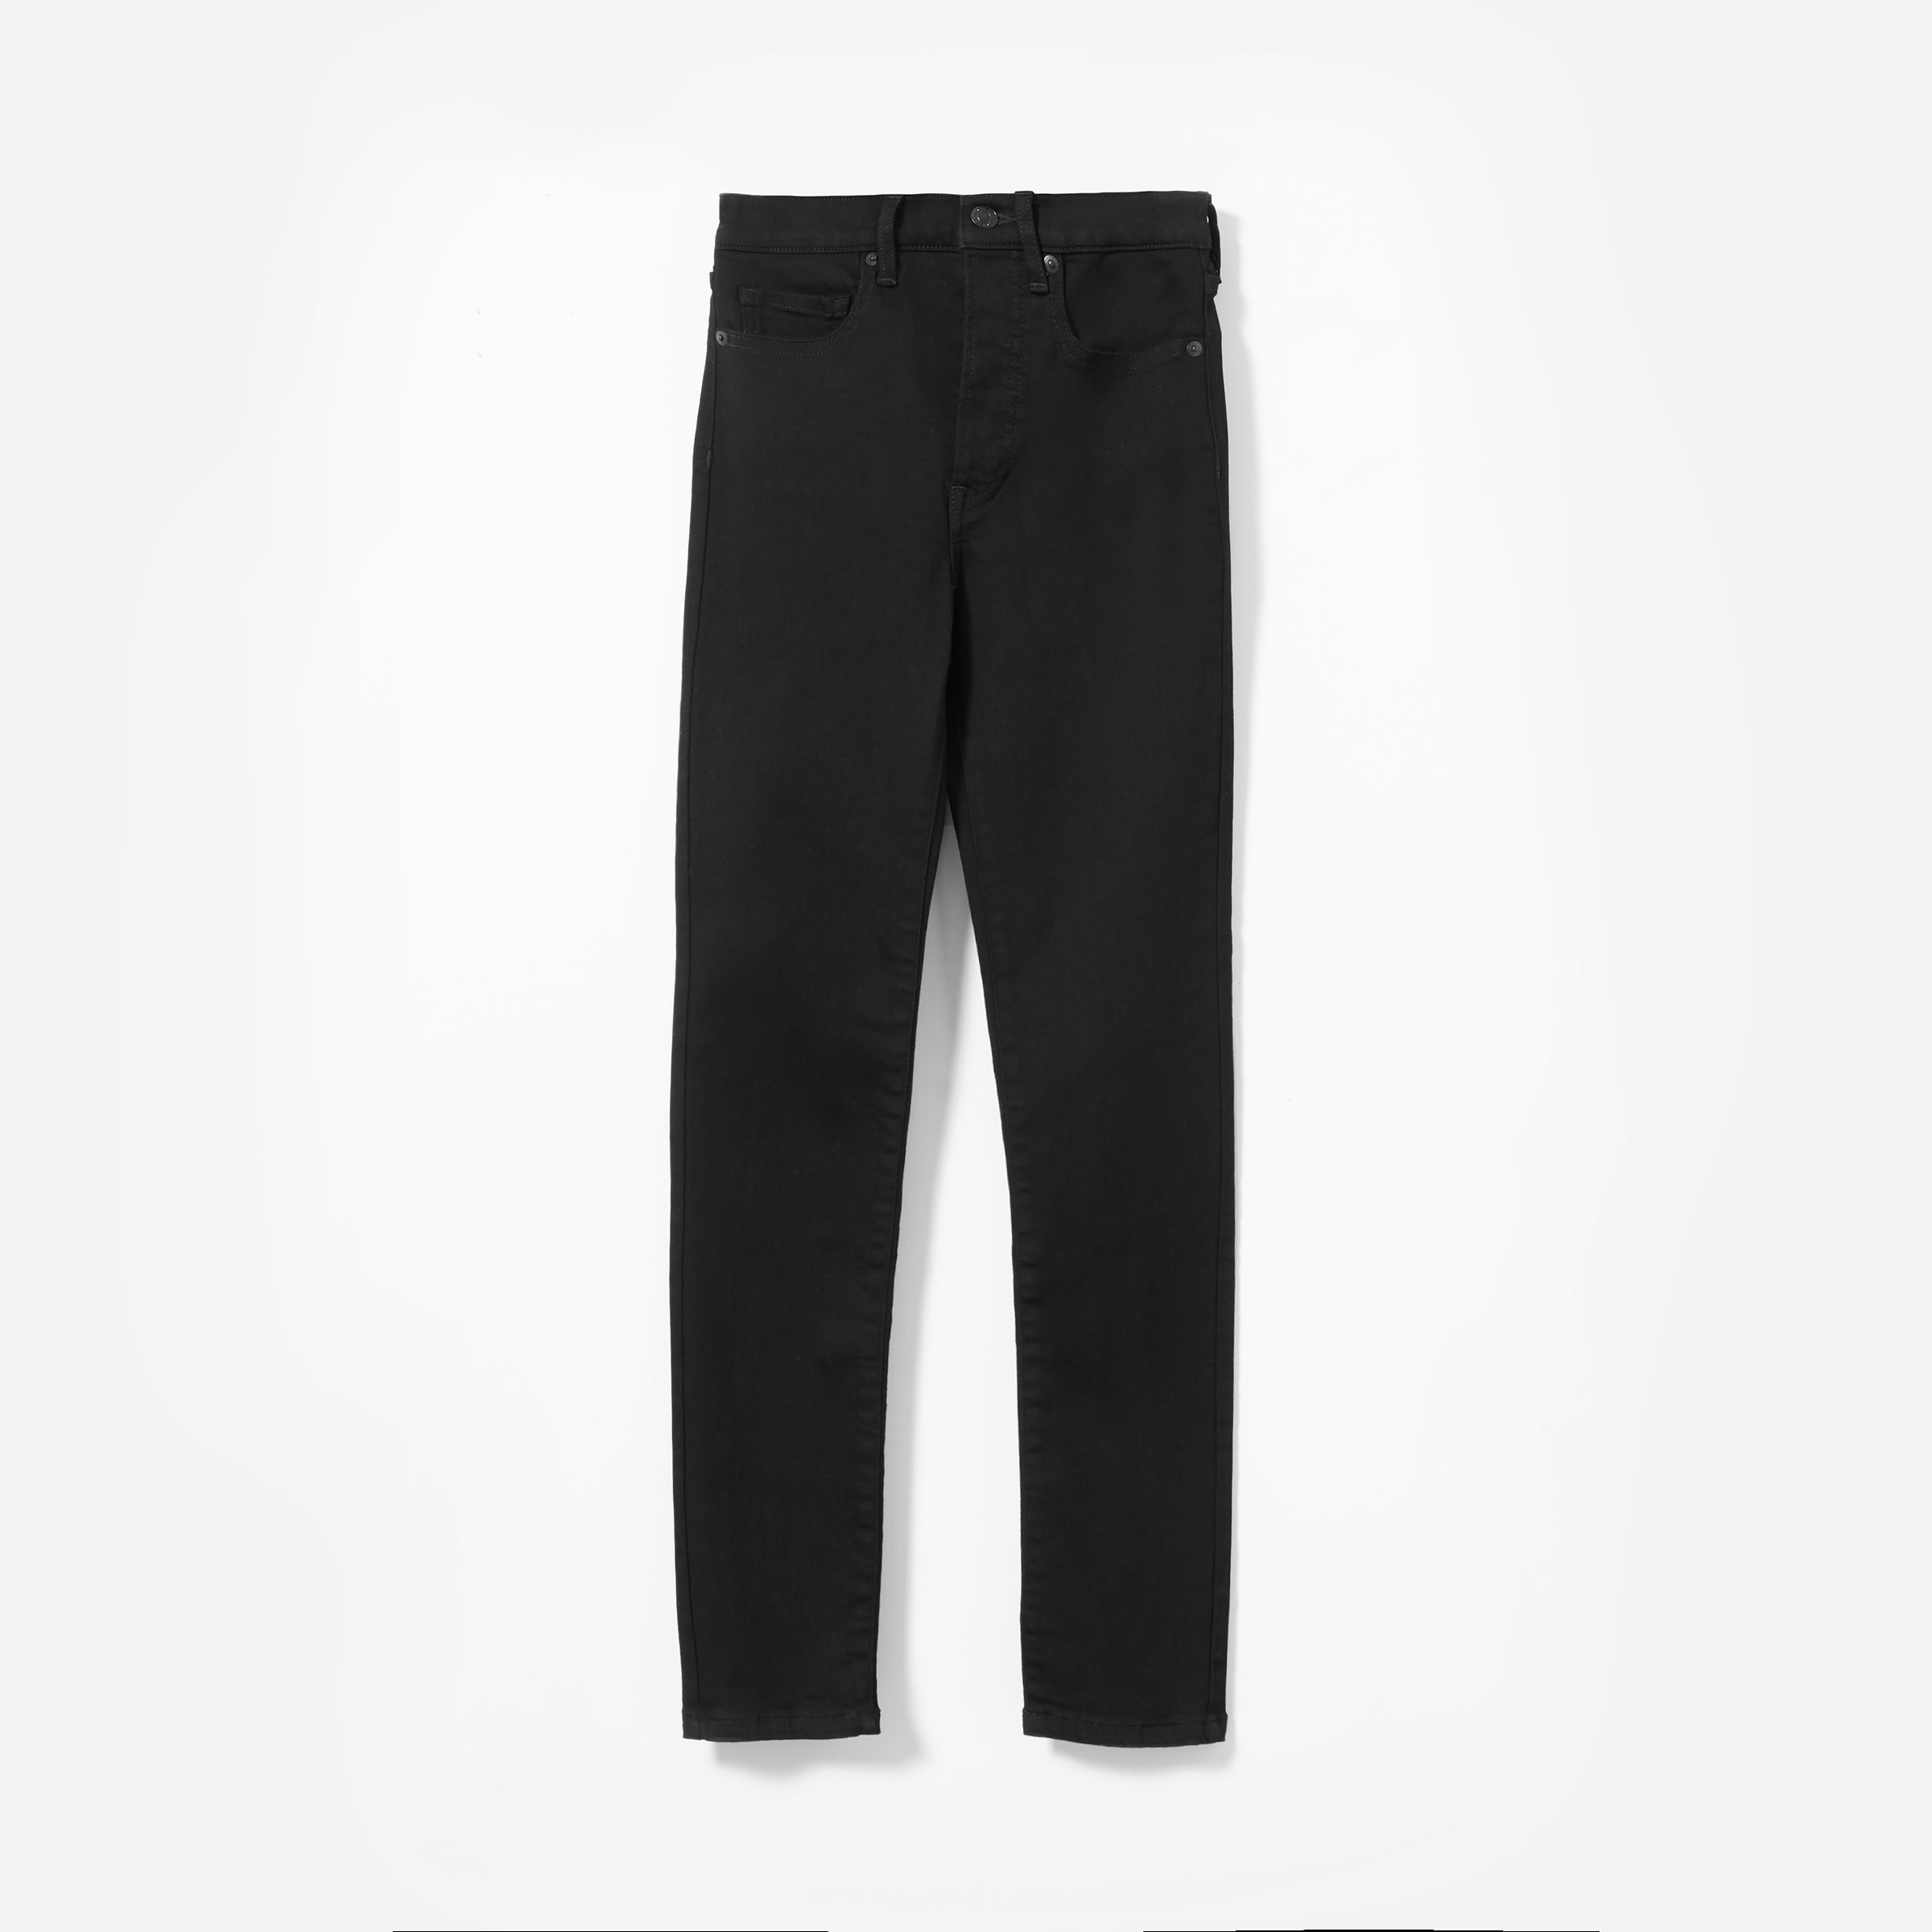 Authentic Stretch High-Rise Skinny   Everlane